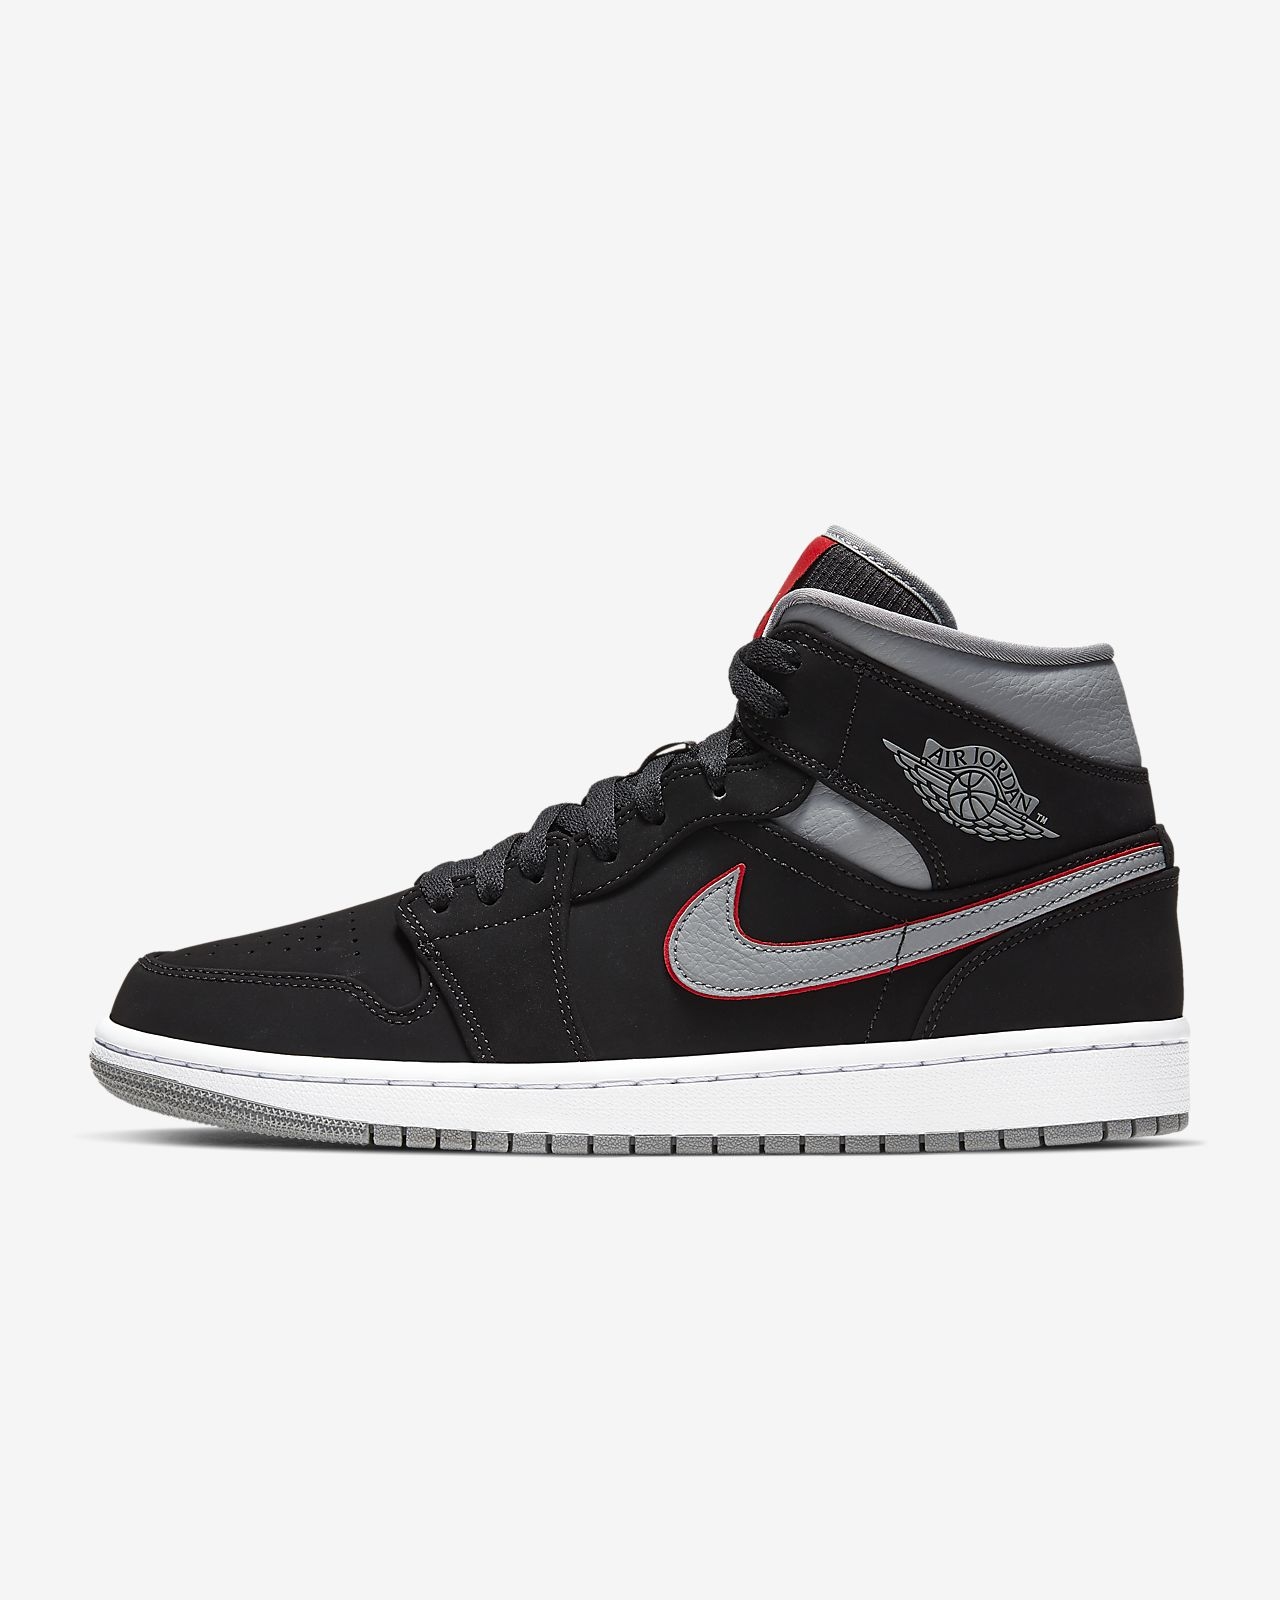 on sale 0227c 84a38 Men s Shoe. Air Jordan 1 Mid